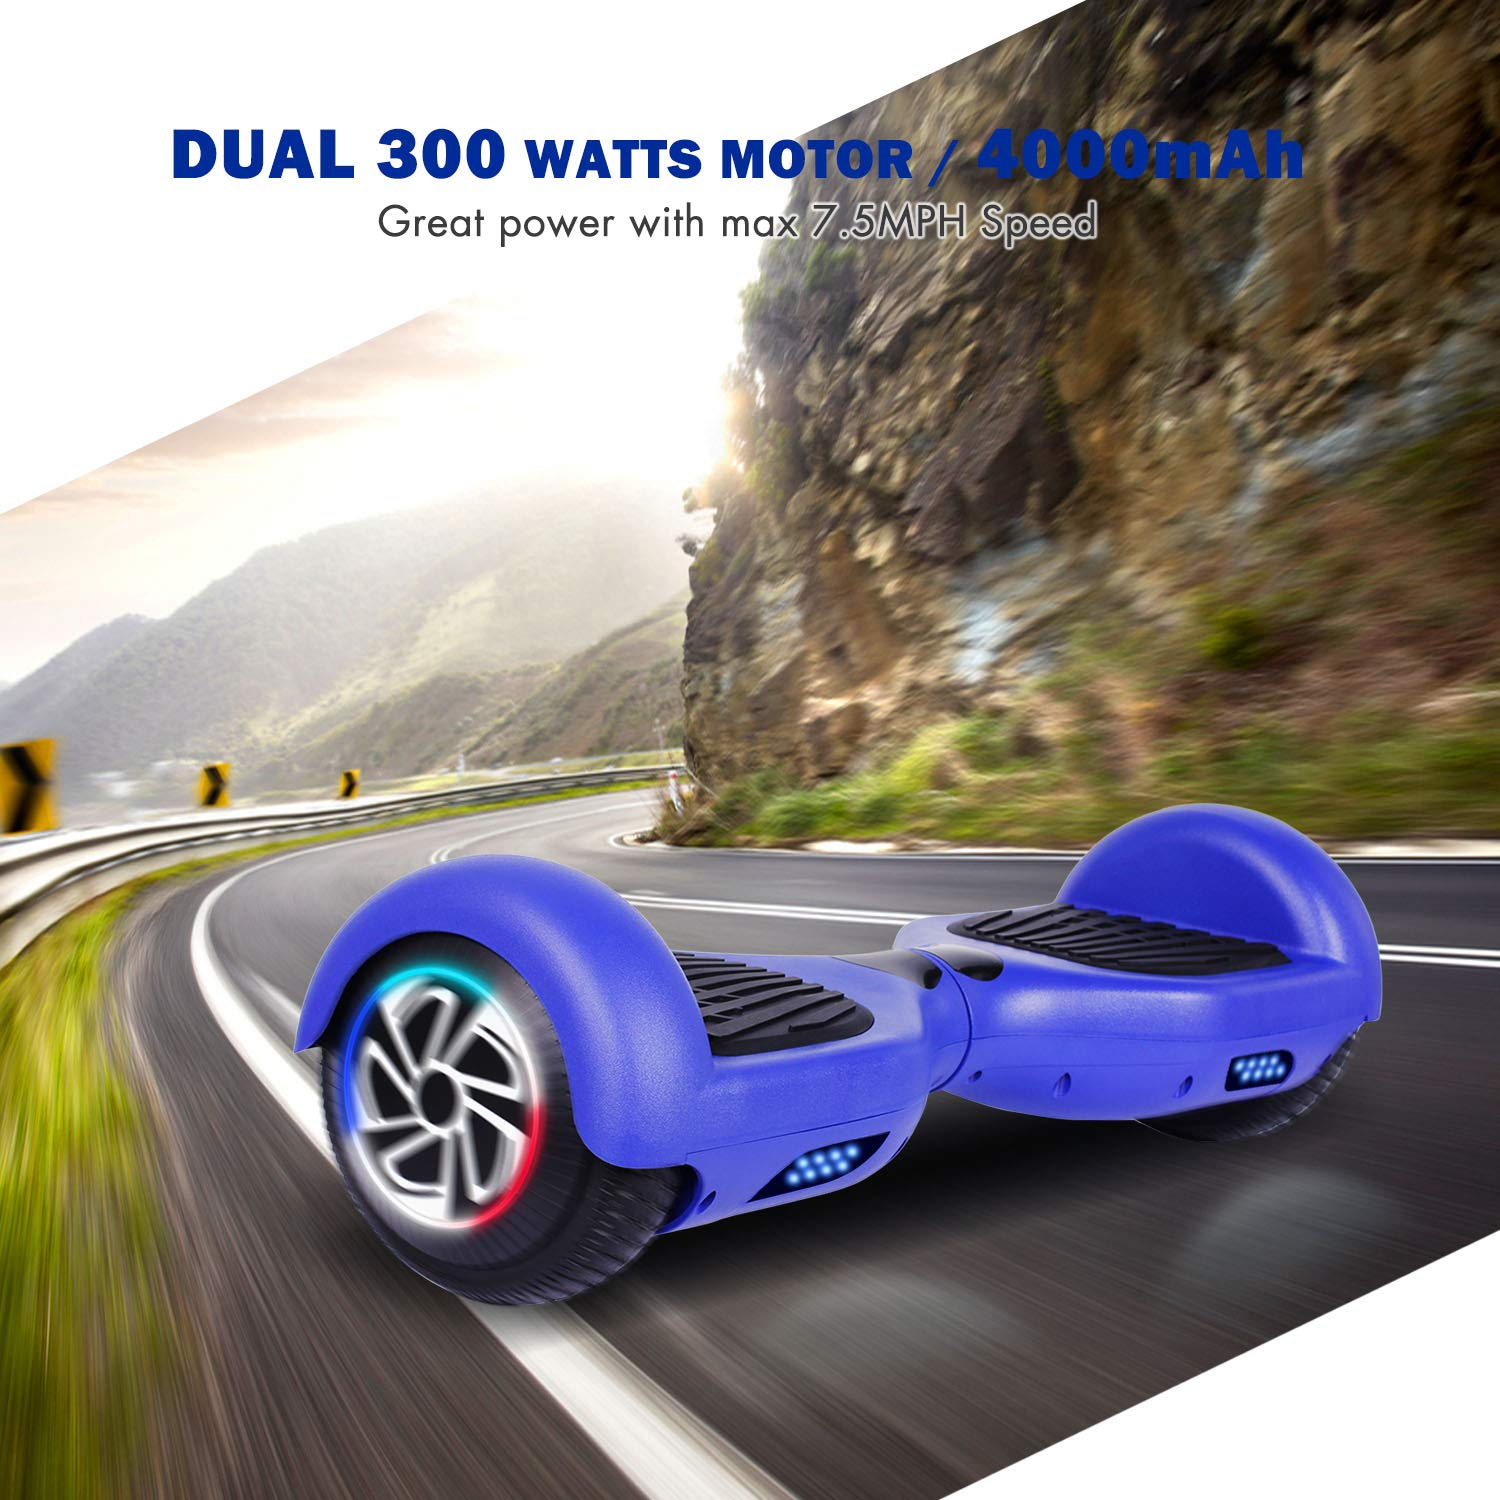 SISIGAD Hoverboard, Self Balancing Hoverboard, 6.5'' Two-Wheel Self Balancing Scooter, Smart Hover Board for Kids Gift, Adult Electric Scooter, with LED Lights and Free Carrying Bag UL2272 Certified by SISIGAD (Image #4)